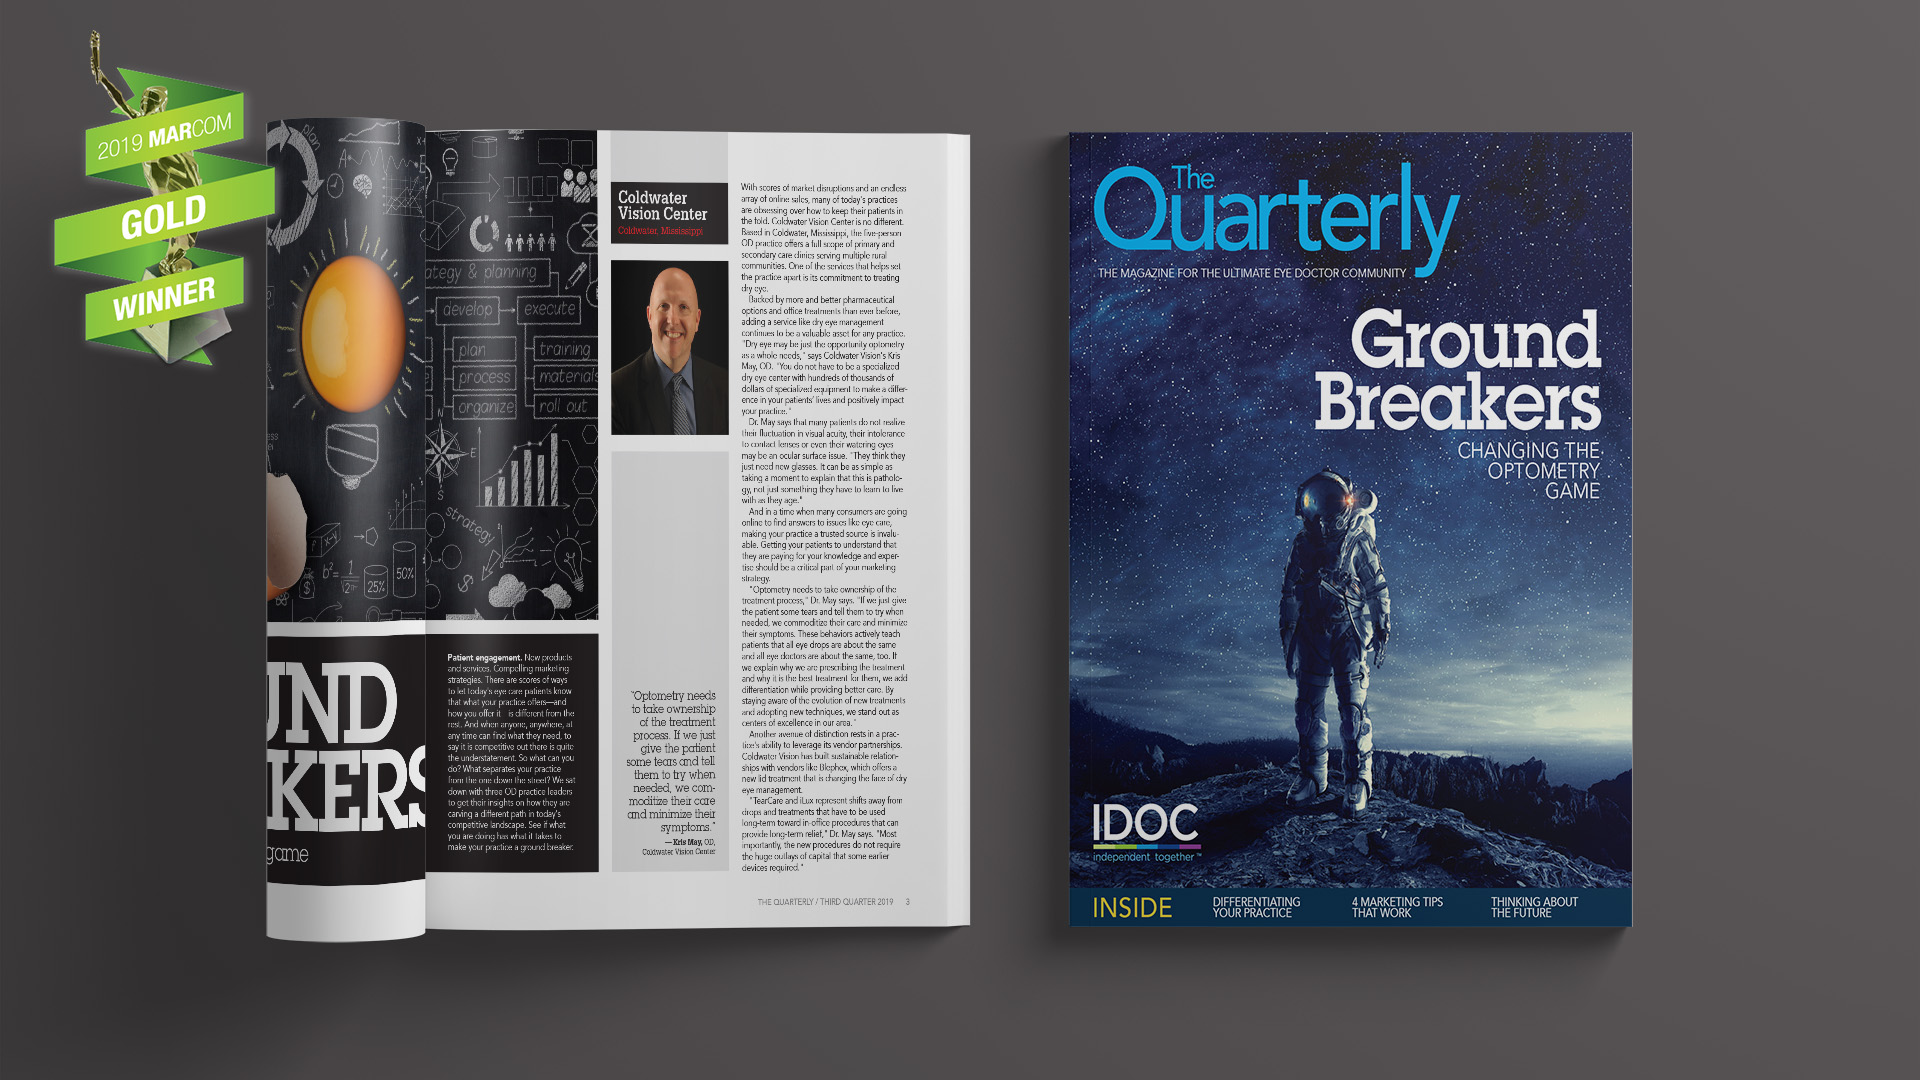 Conduit, Inc. | The Quarterly 2019 Marcom Gold Award Winner